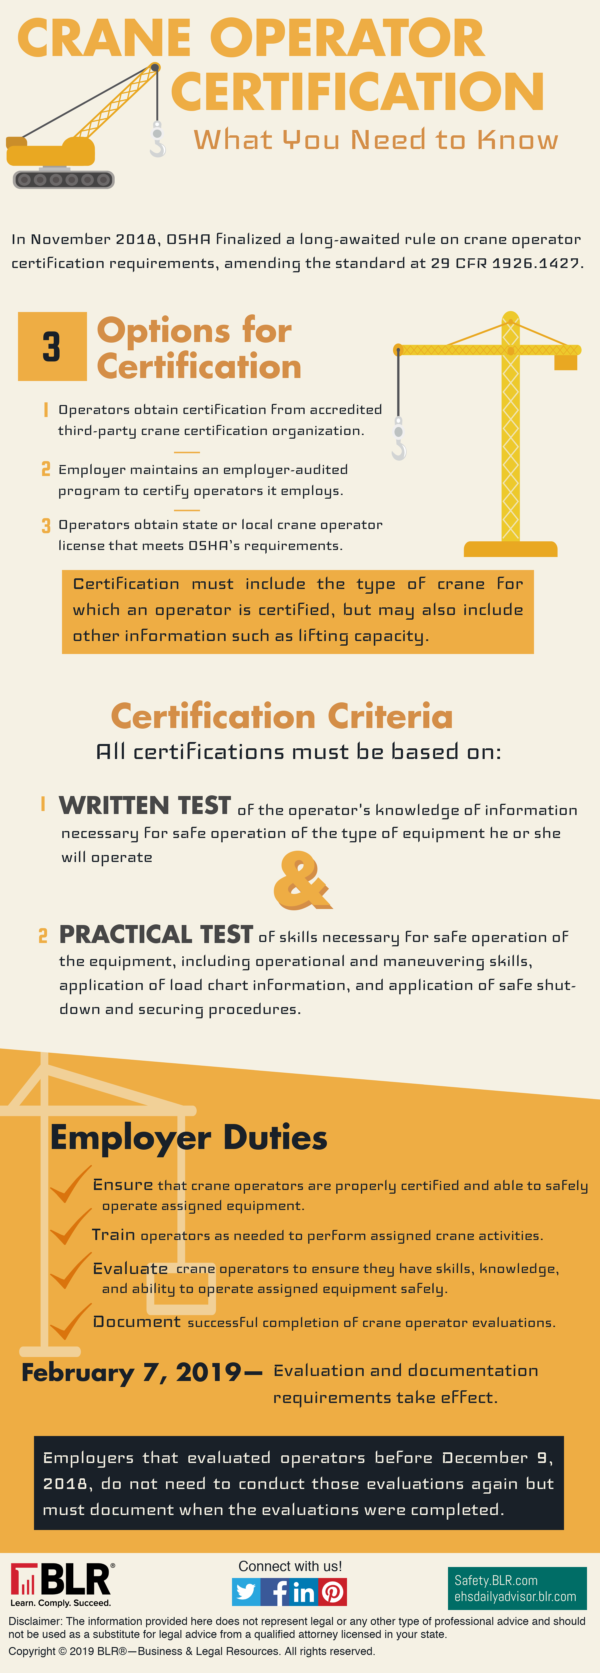 Infographic Crane Operator Certification What You Need To Know